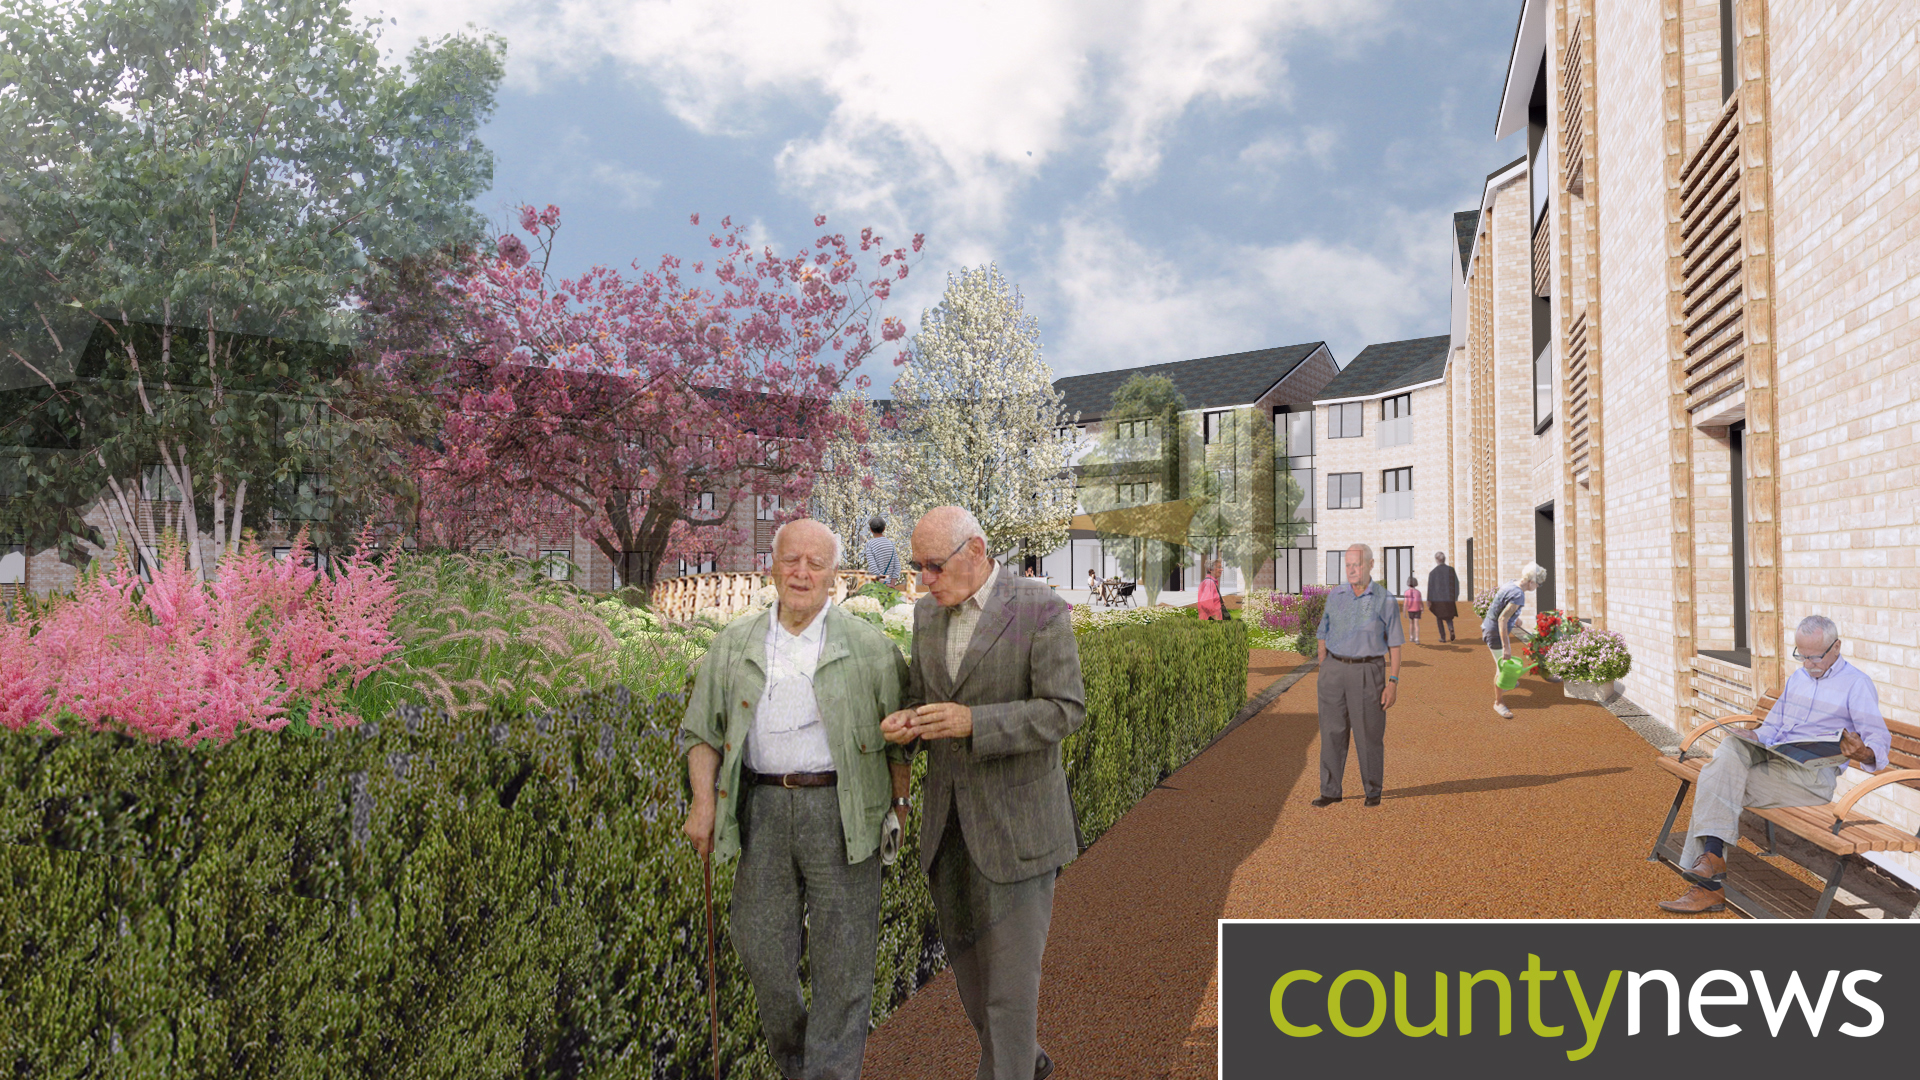 A design concept for a care home in the county.